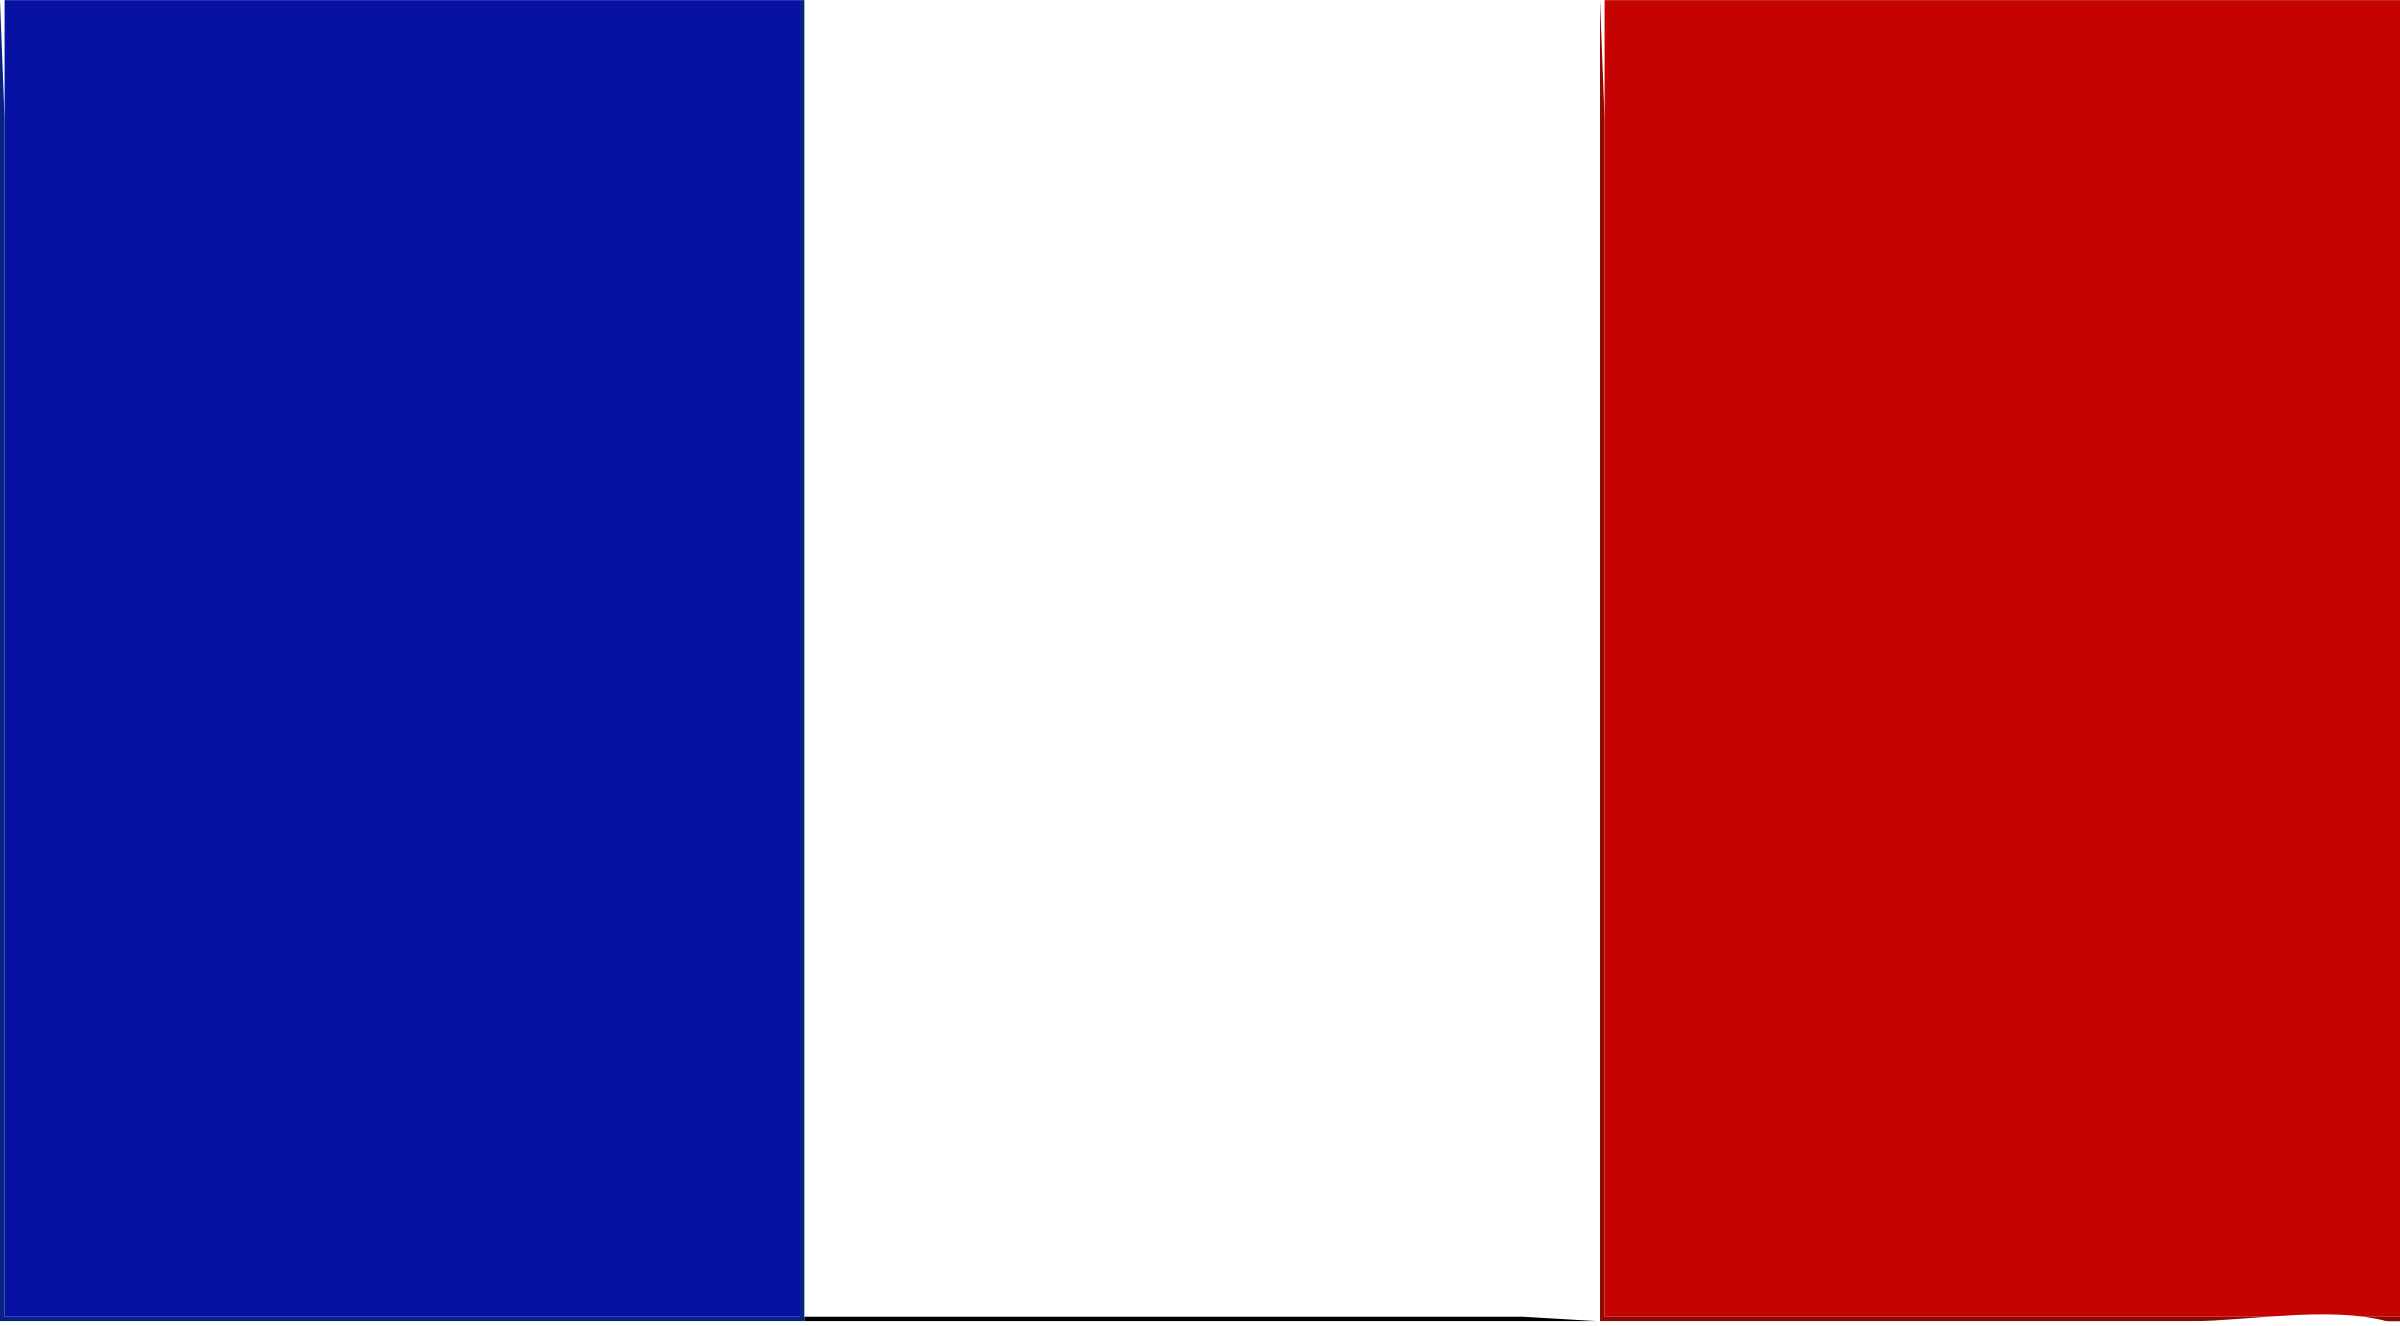 Flag of France by Joesph